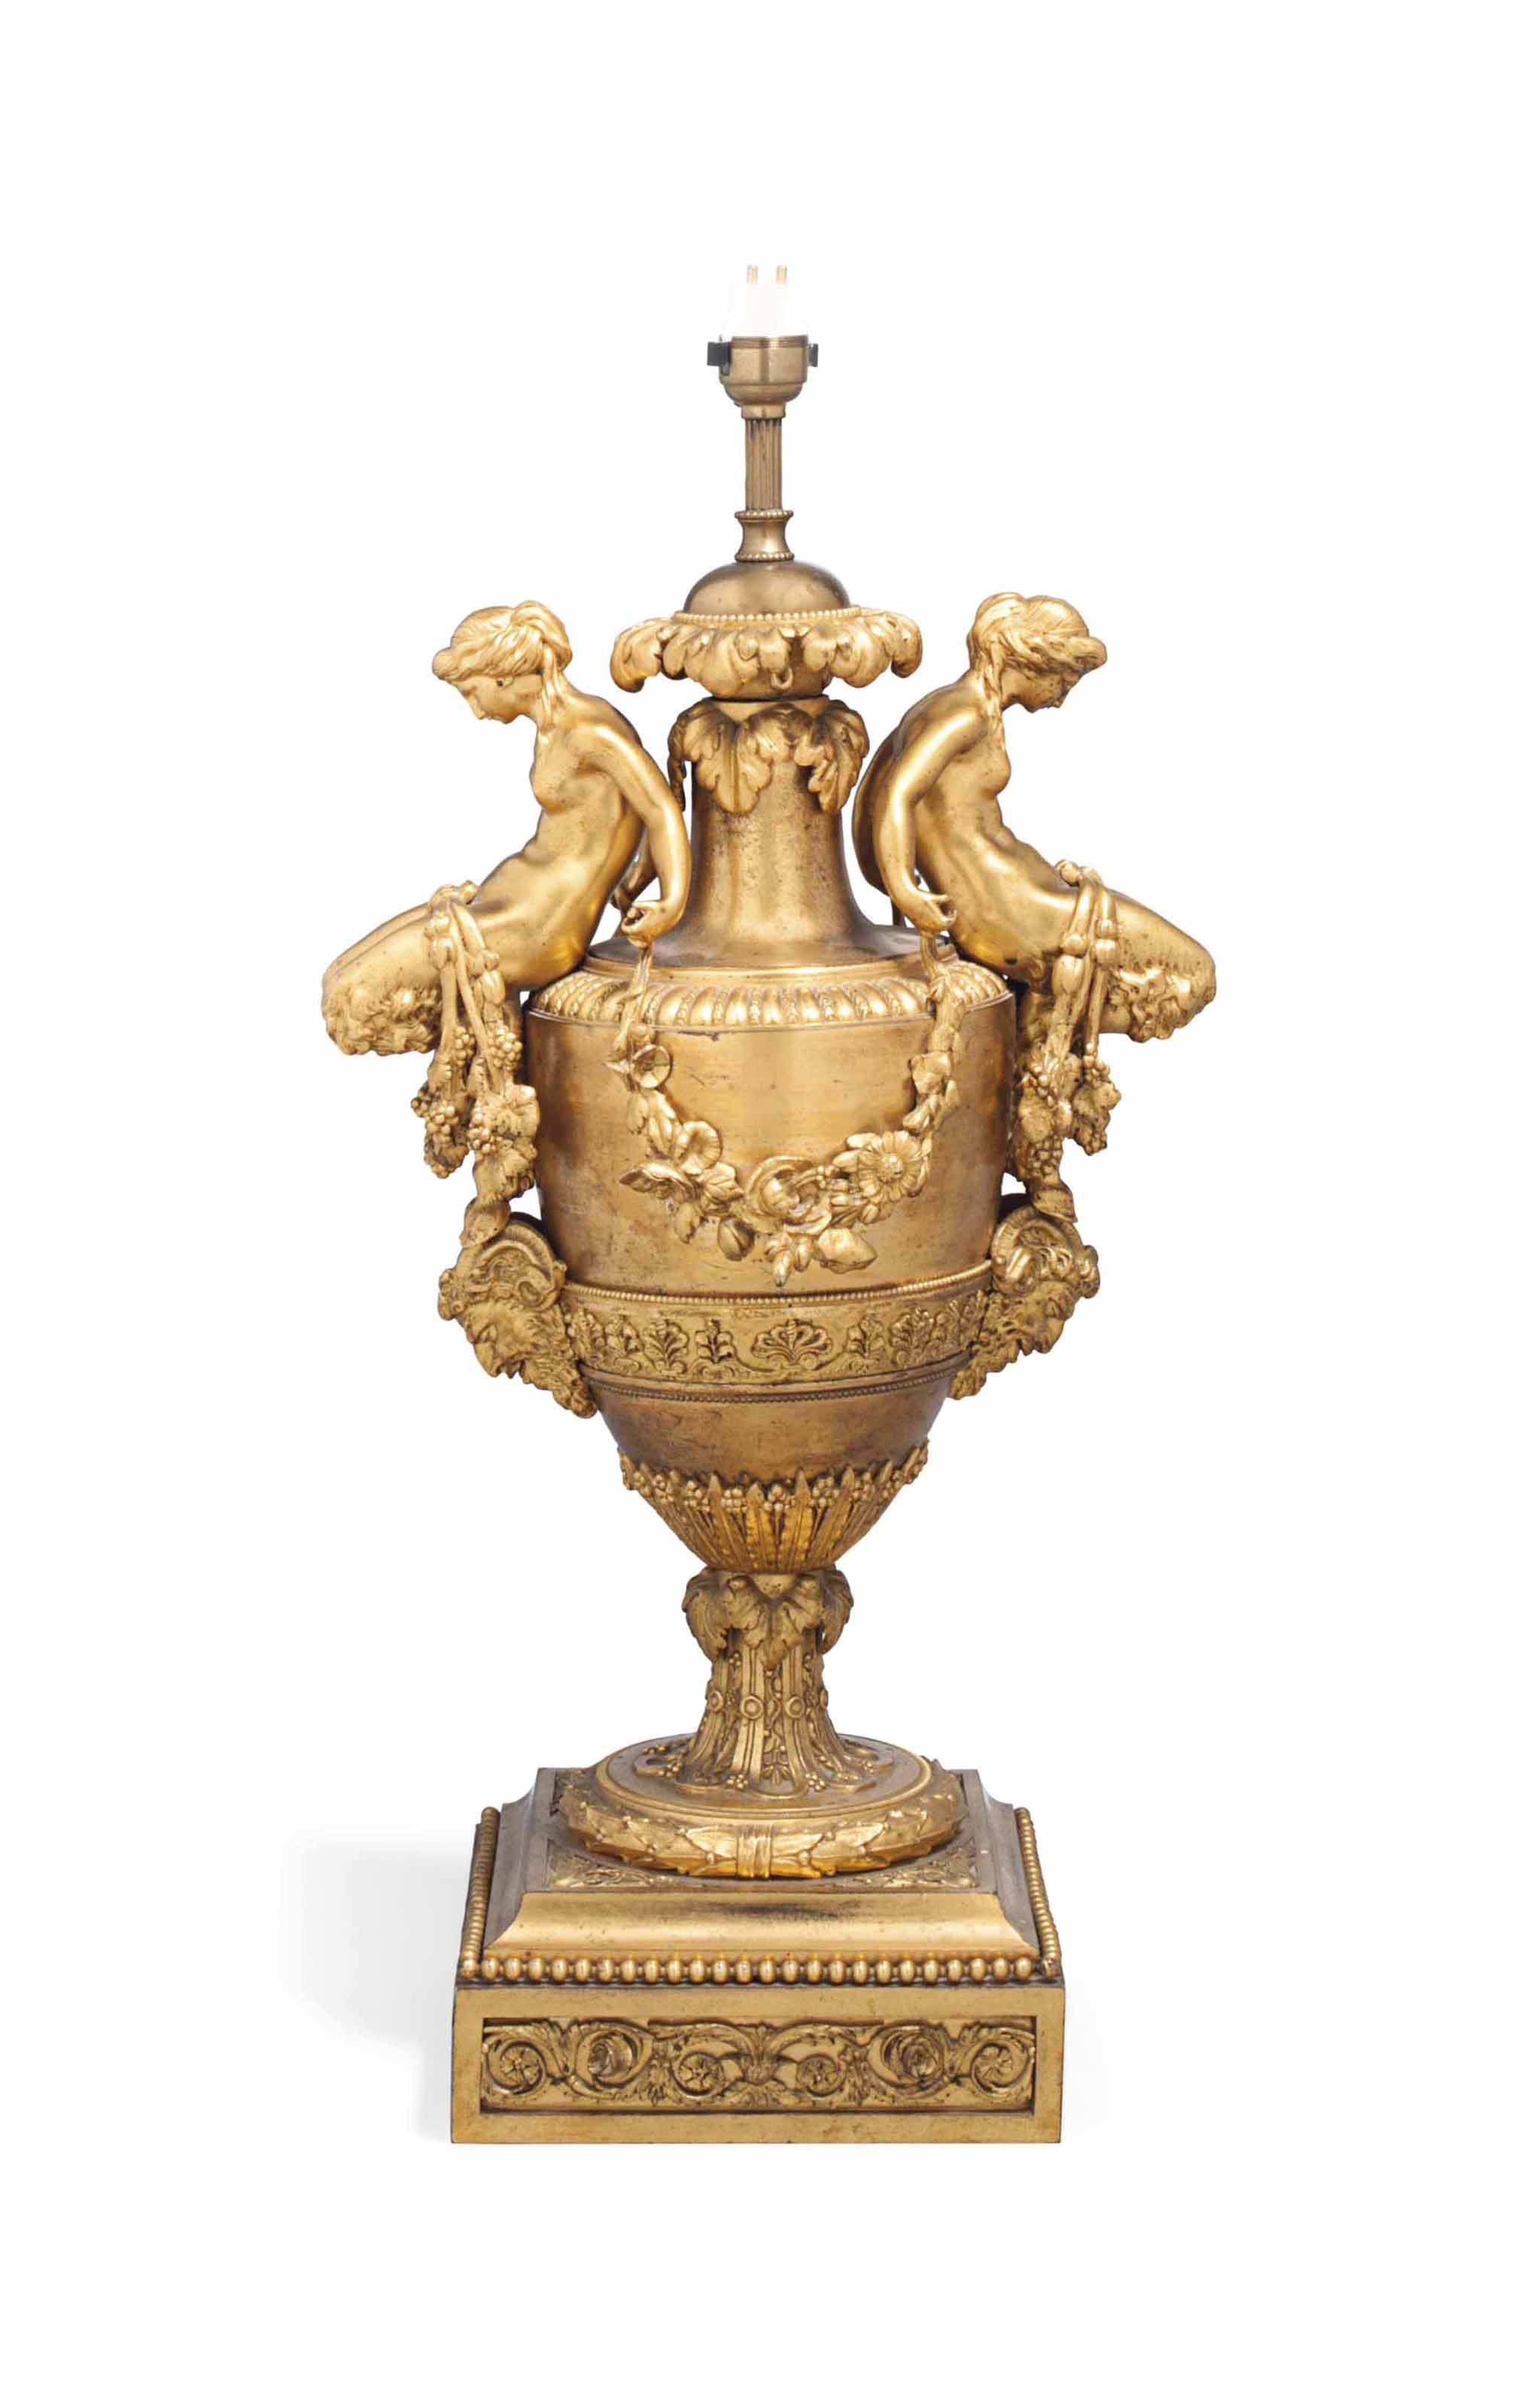 A FRENCH GILT-BRONZE TABLE LAMP